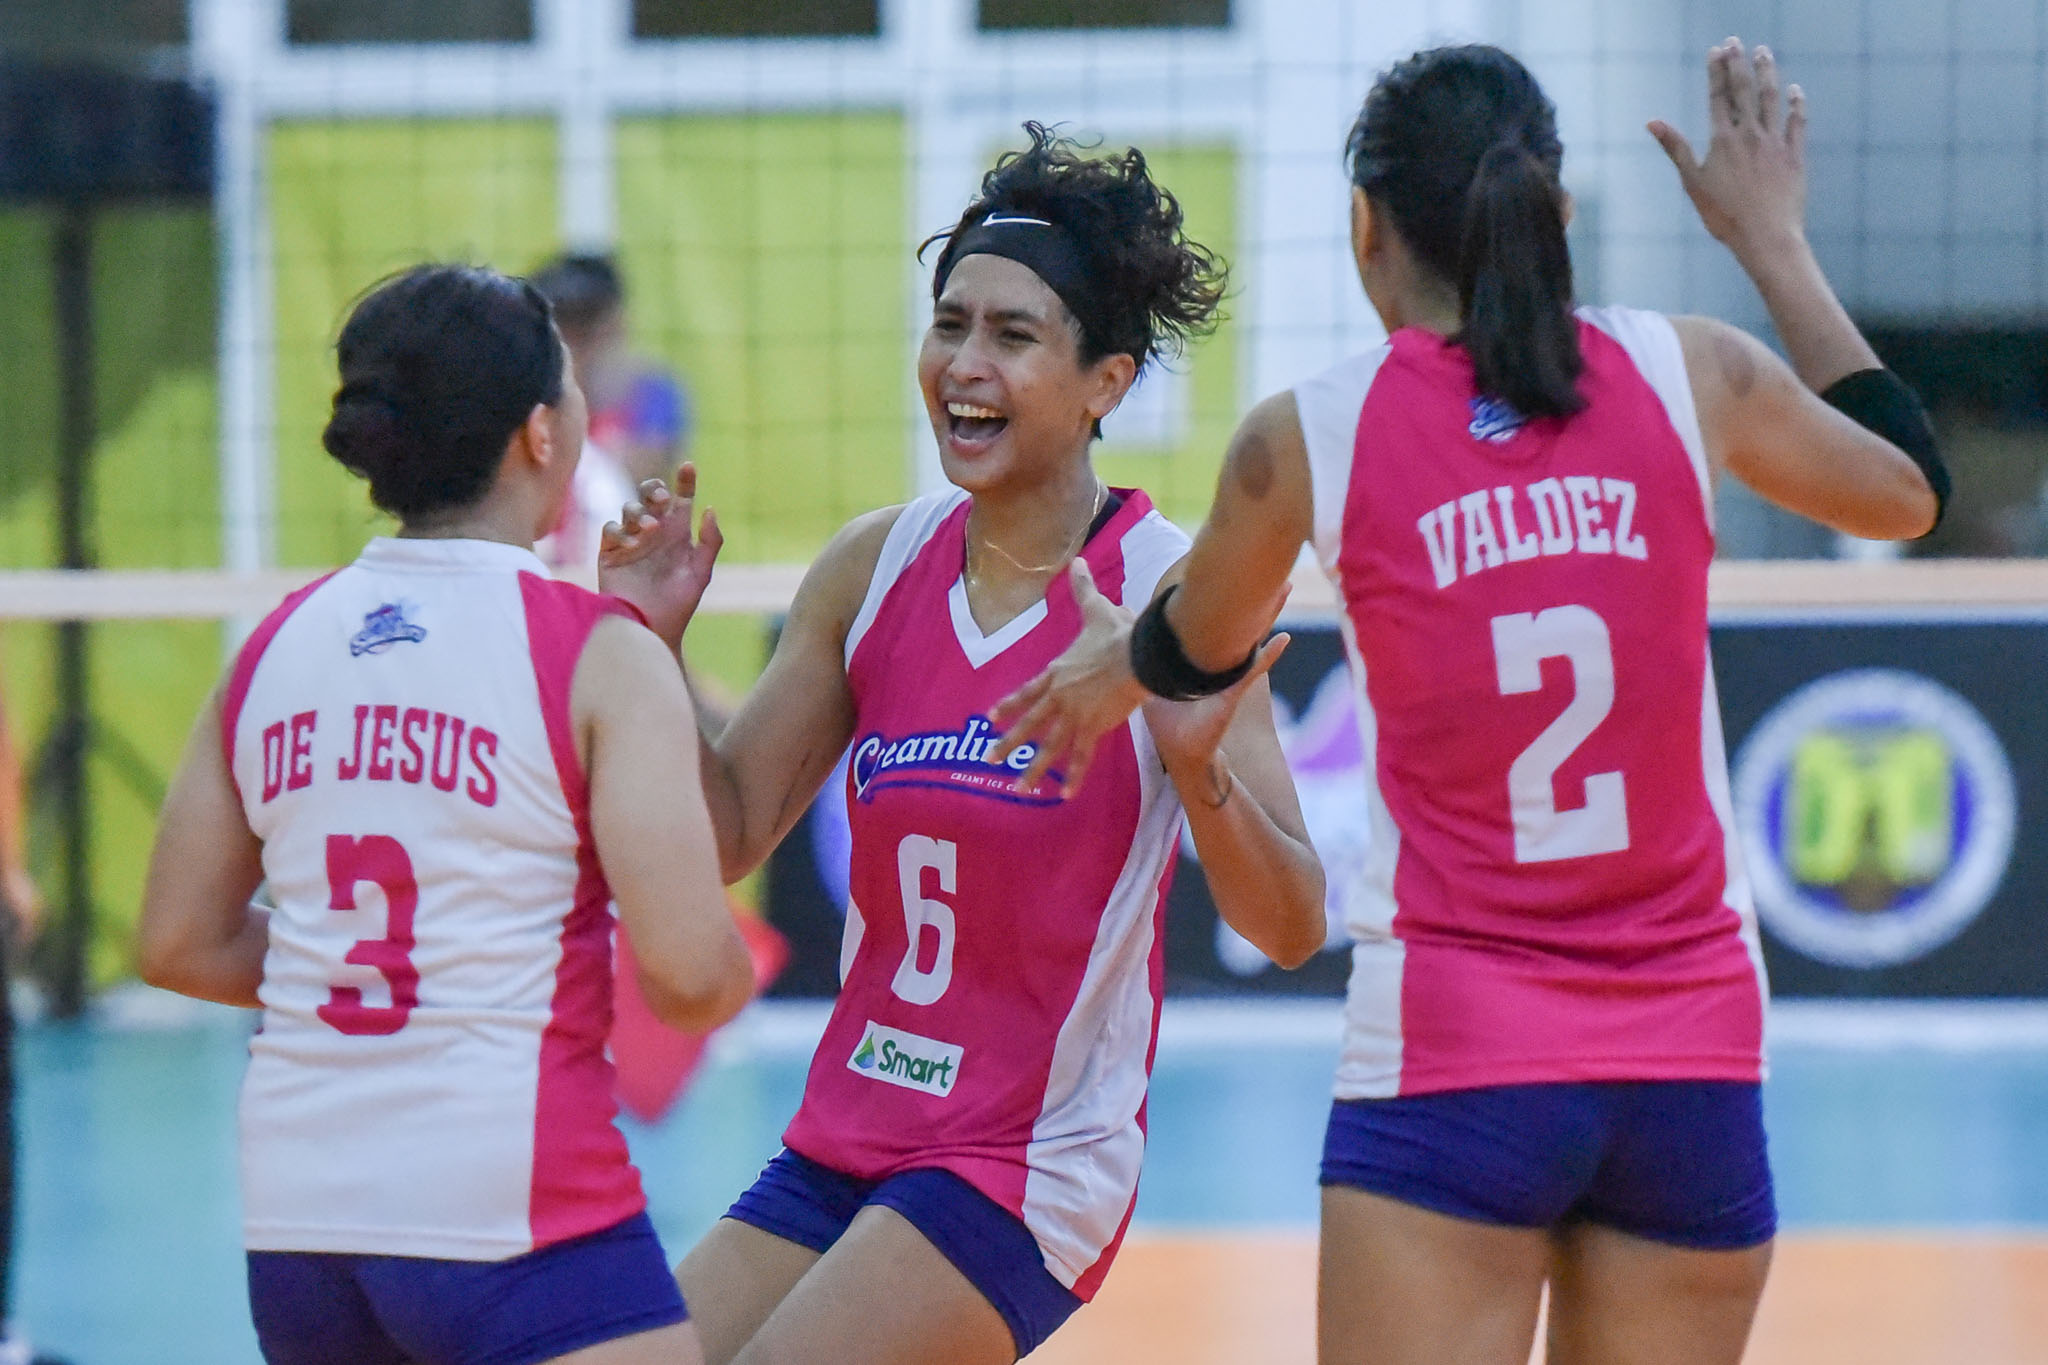 2021-PVL-Open-Creamline-vs.-Choco-Mucho-Jeanette-Panaga-7924 Panaga grateful to Creamline's staff as she plays ahead of schedule News PVL Volleyball  - philippine sports news